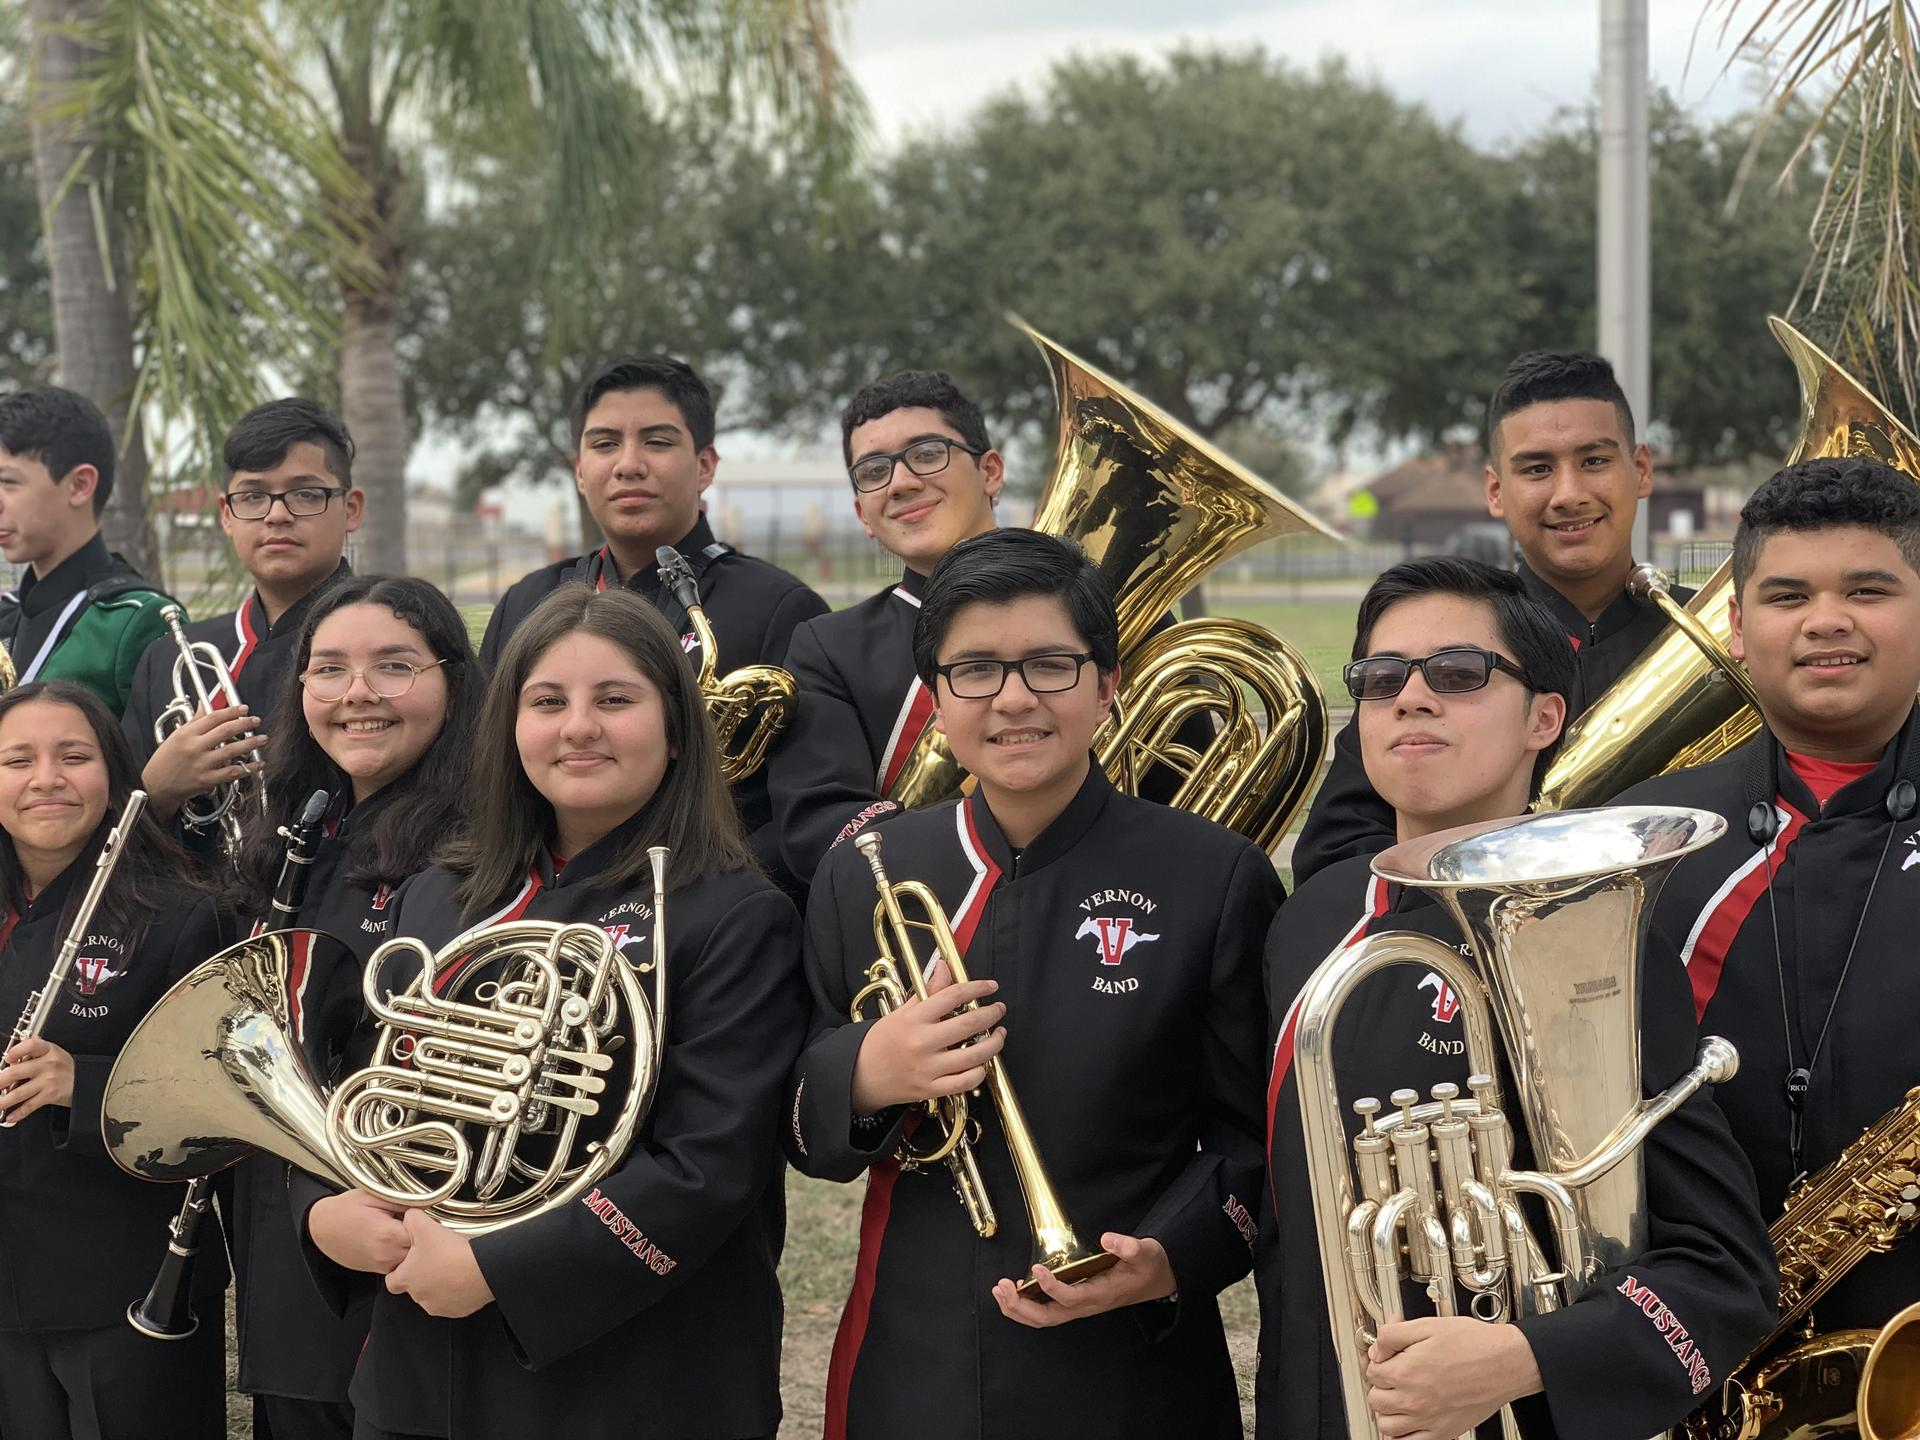 2020 MS All-Region Band Members